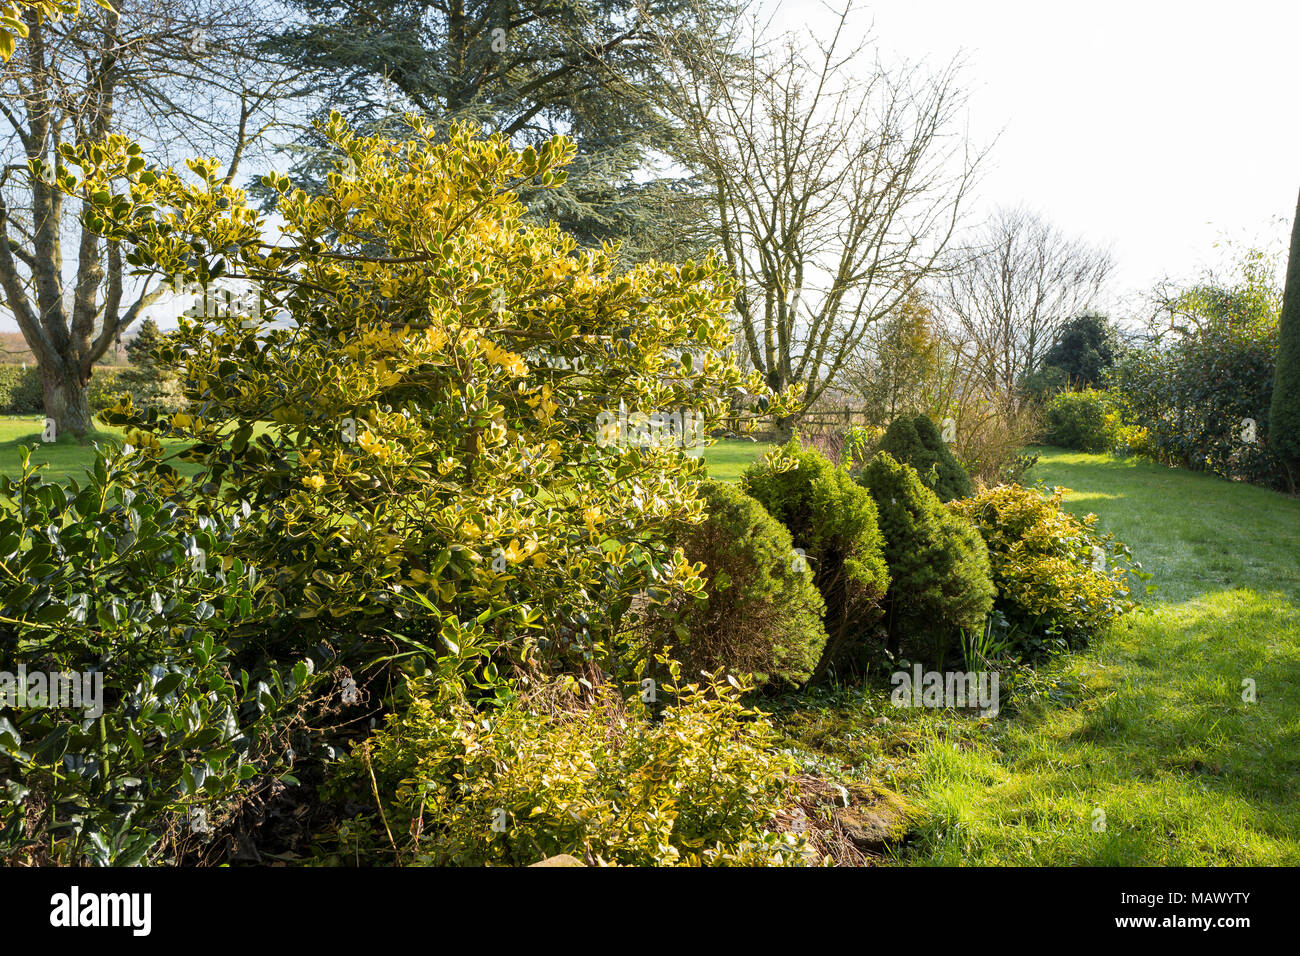 A Mixed Border With Evergreen Shrubs Adding Colour To A Late